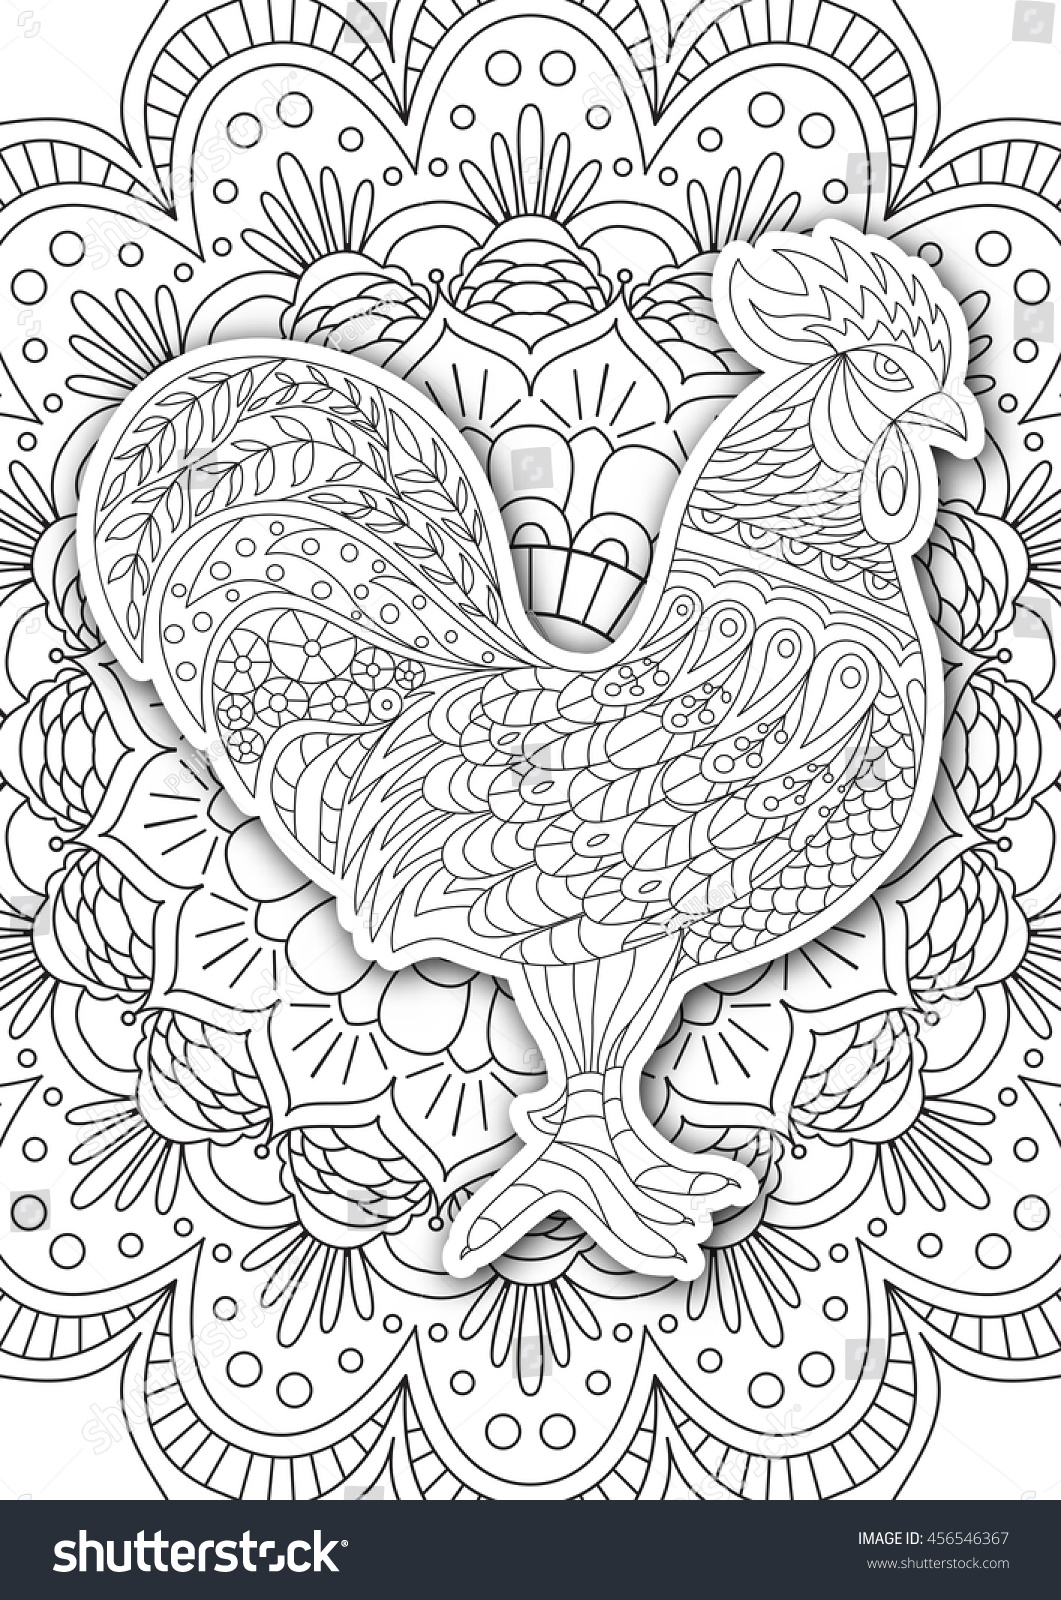 coloring pages for older adults - printable coloring book page adults rooster stock vector